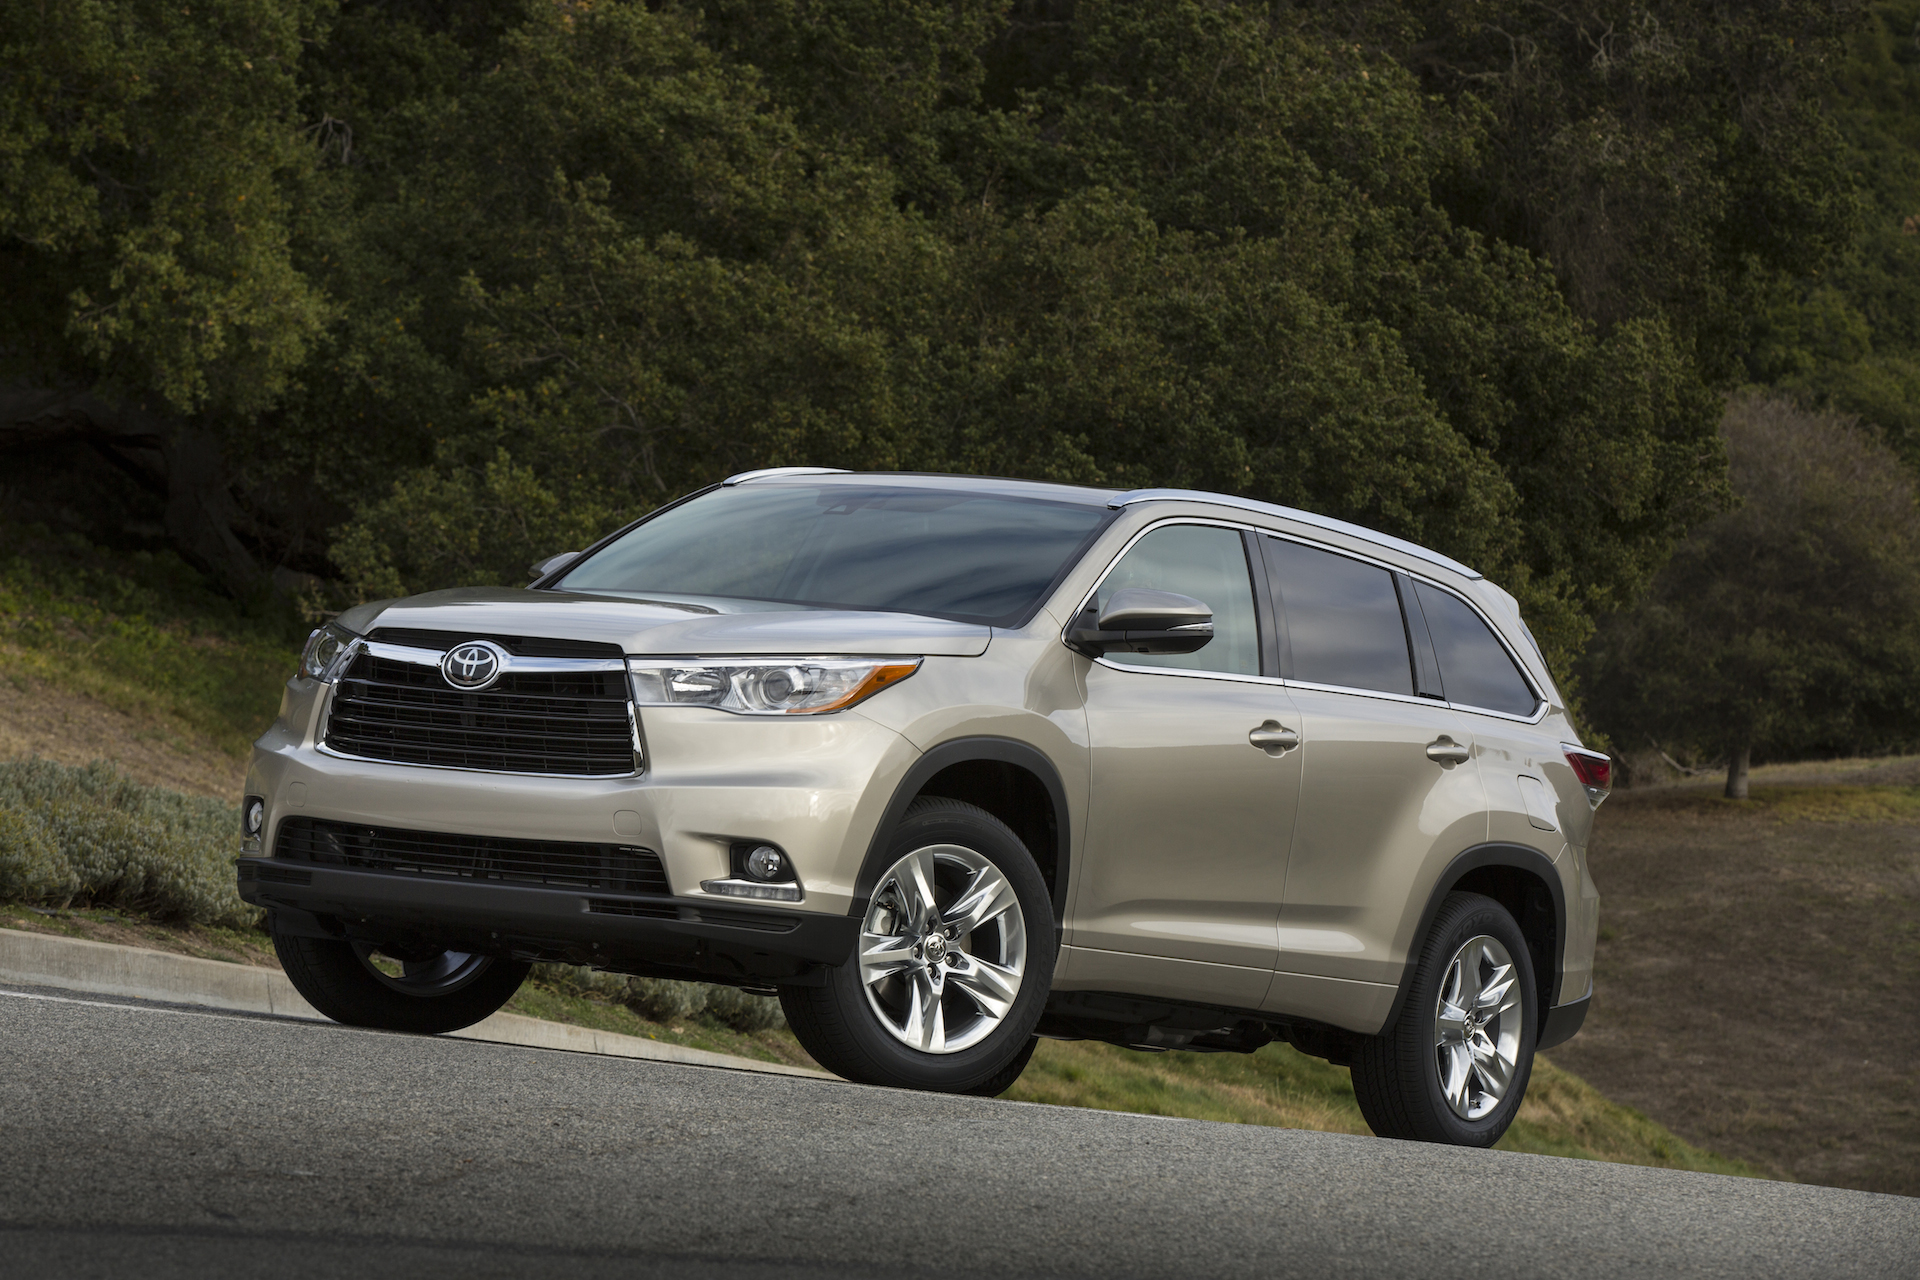 2014 toyota highlander review ratings specs prices and photos the car connection. Black Bedroom Furniture Sets. Home Design Ideas